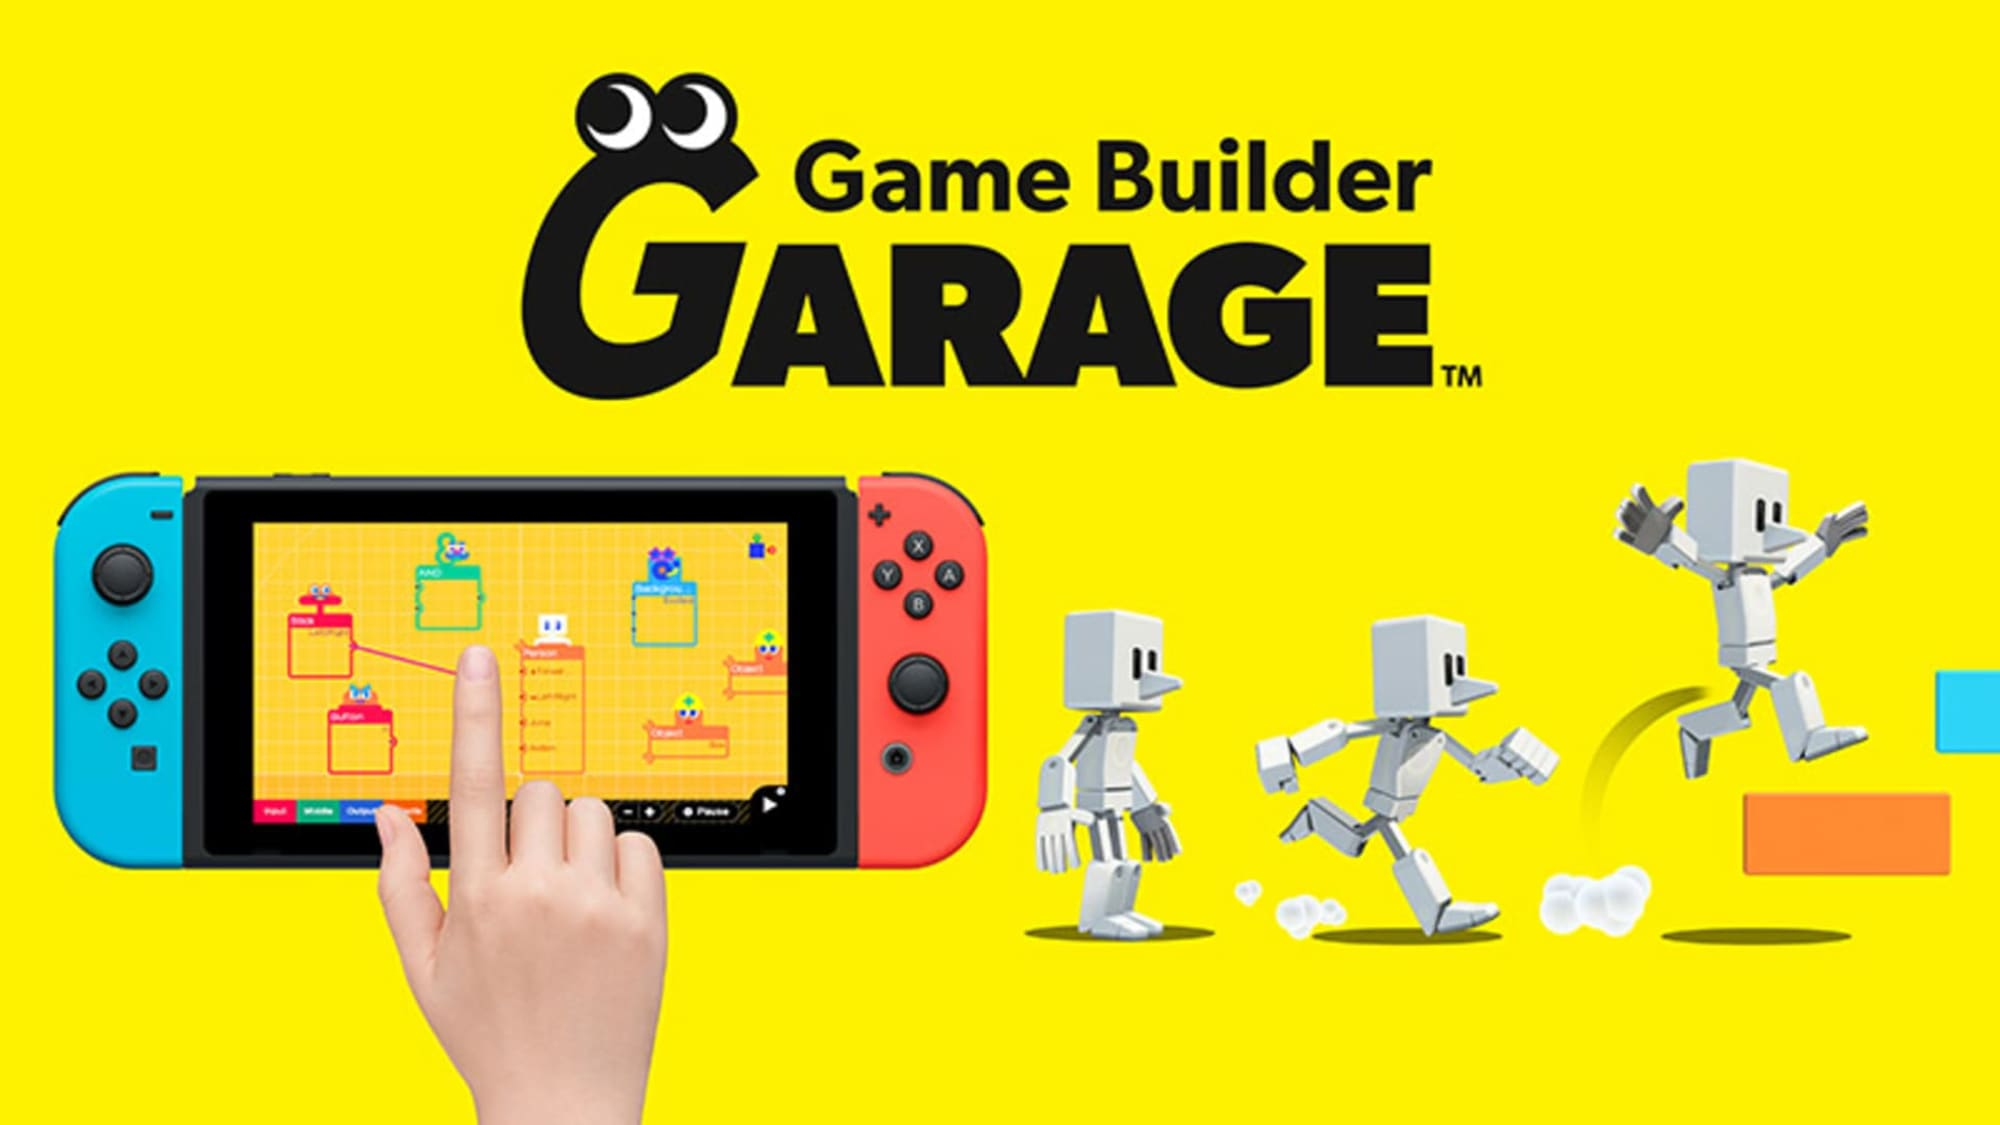 Game Builder Garage review: It's what you make of it